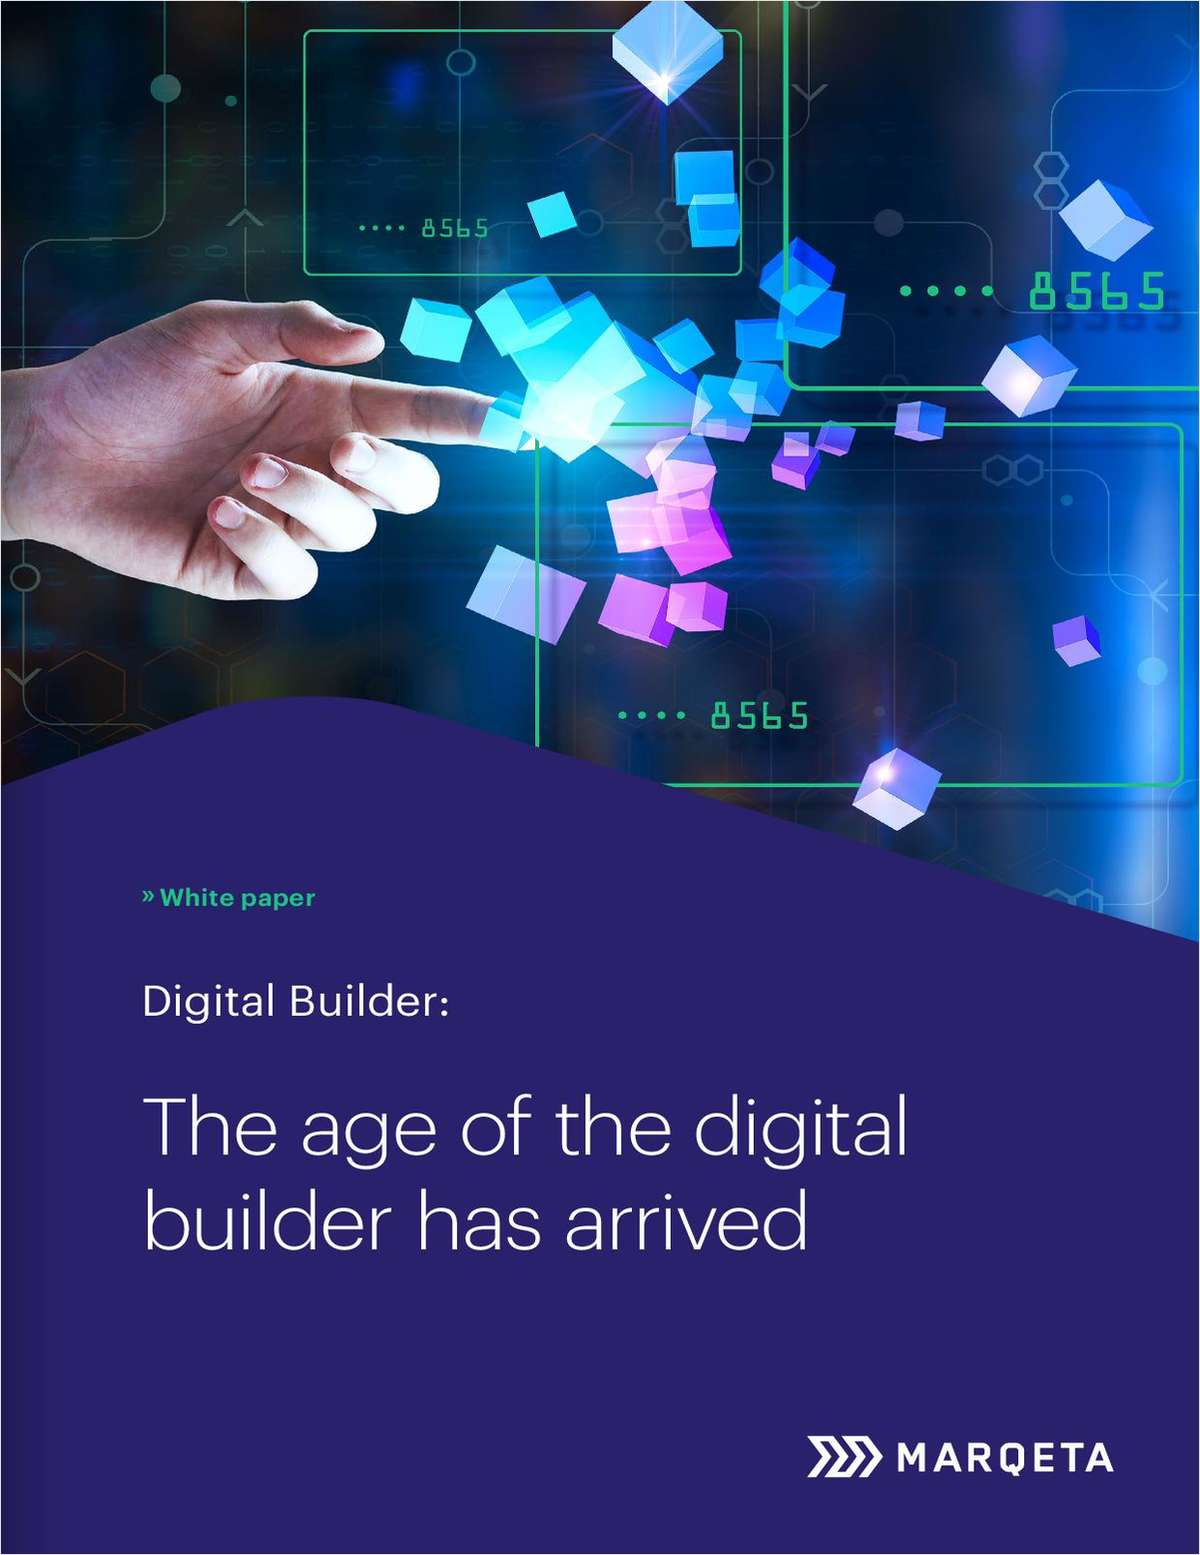 The age of the digital builder has arrived